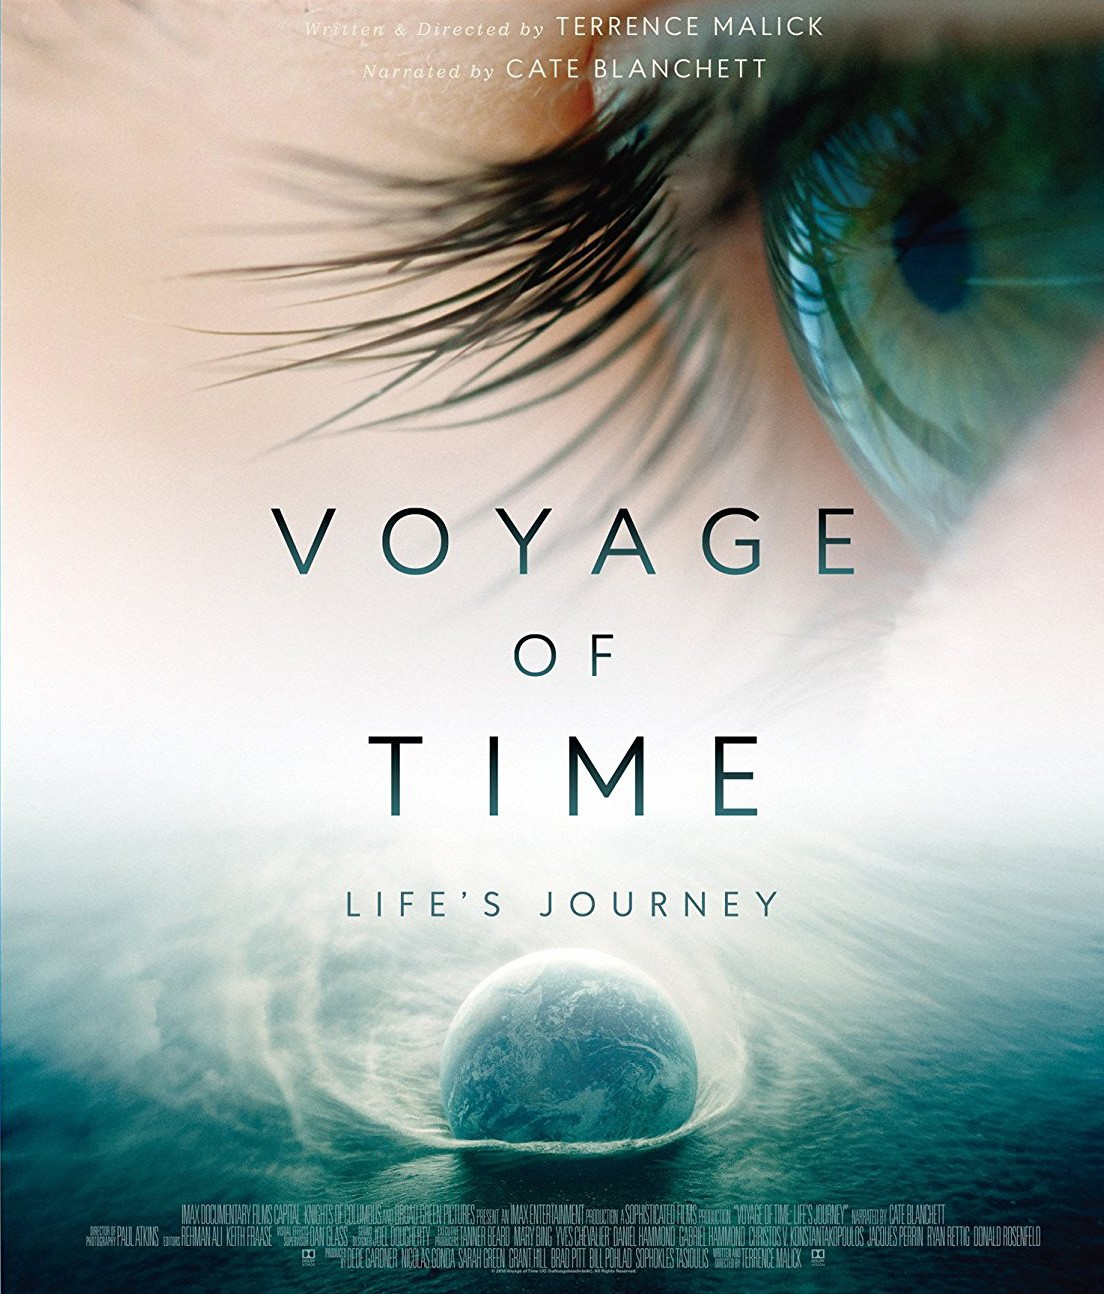 3cd8070b4d Voyage of Time: Life's Journey - Available as a download or stream?